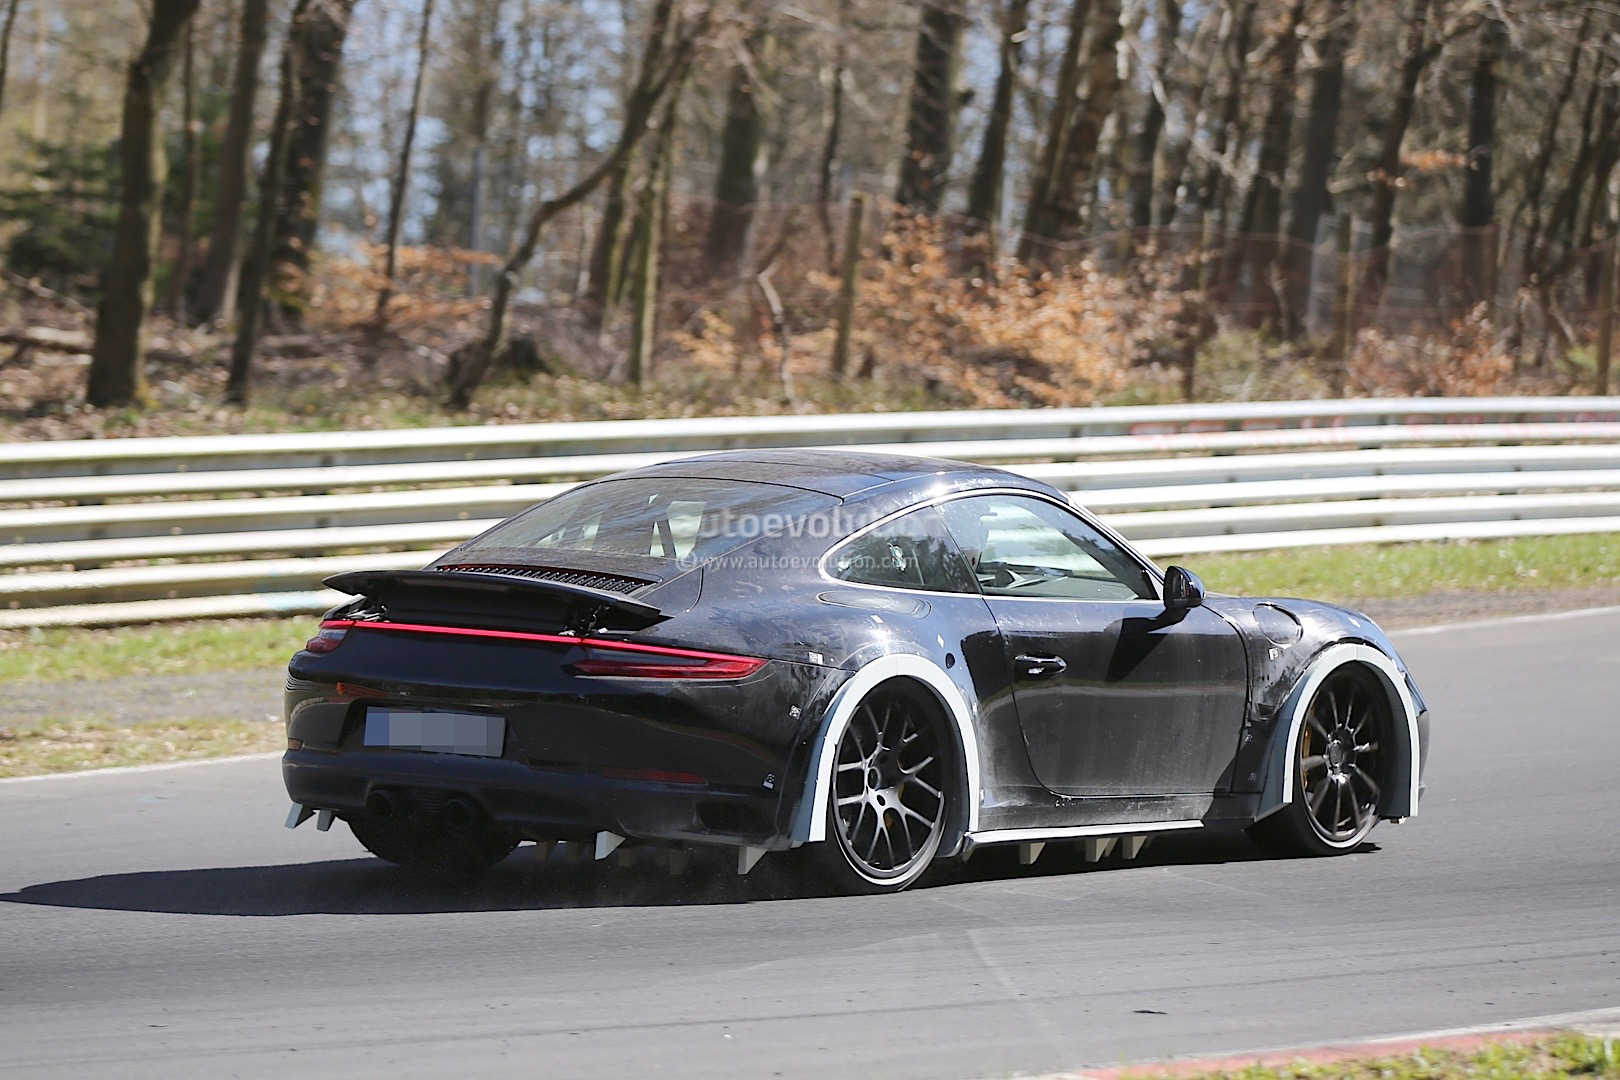 2019 Porsche 911 Chassis Development Mule Spied On The